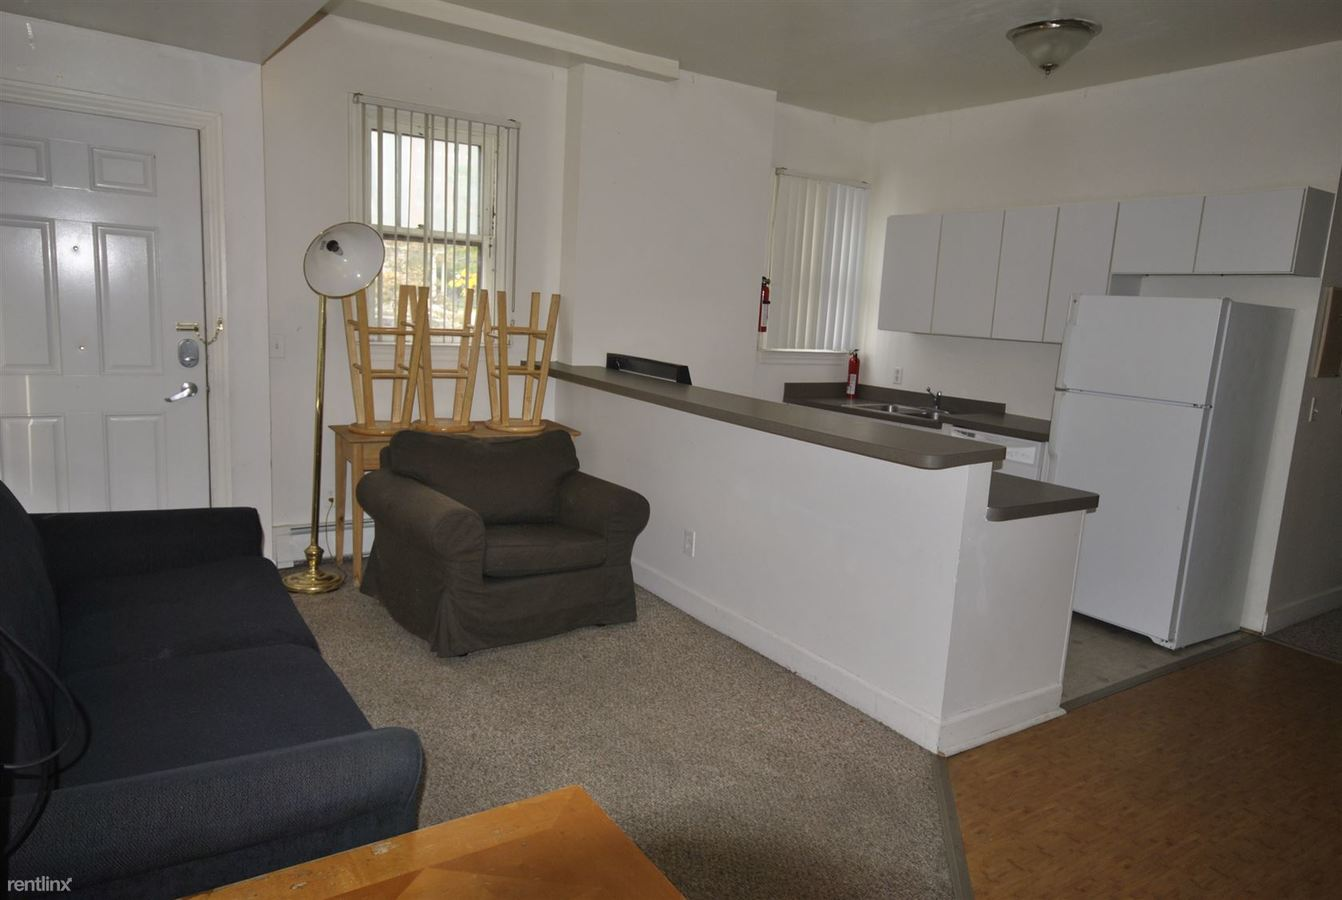 4 Bedrooms 2 Bathrooms Apartment for rent at 1100 Hill St in Ann Arbor, MI